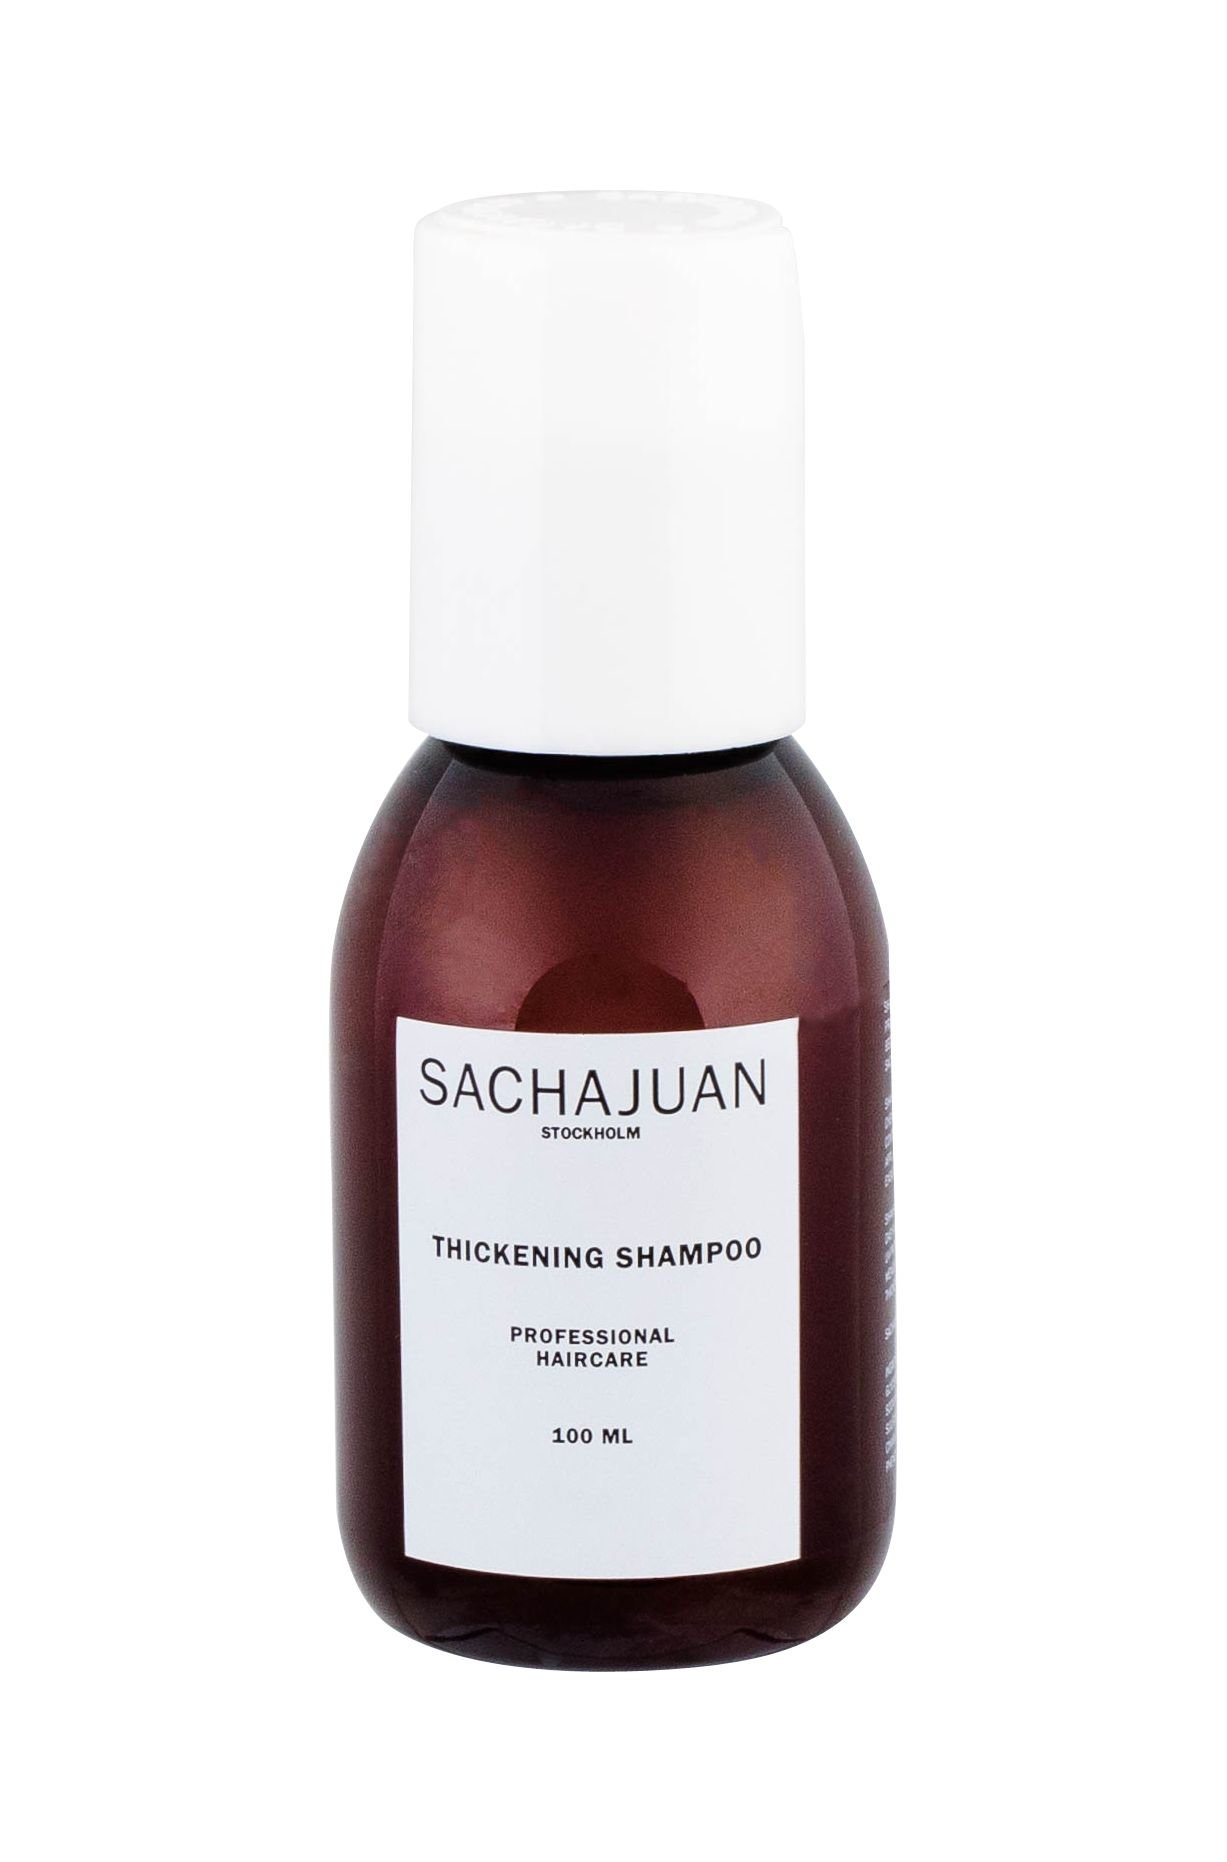 Sachajuan Cleanse & Care Shampoo 100ml  Thickening